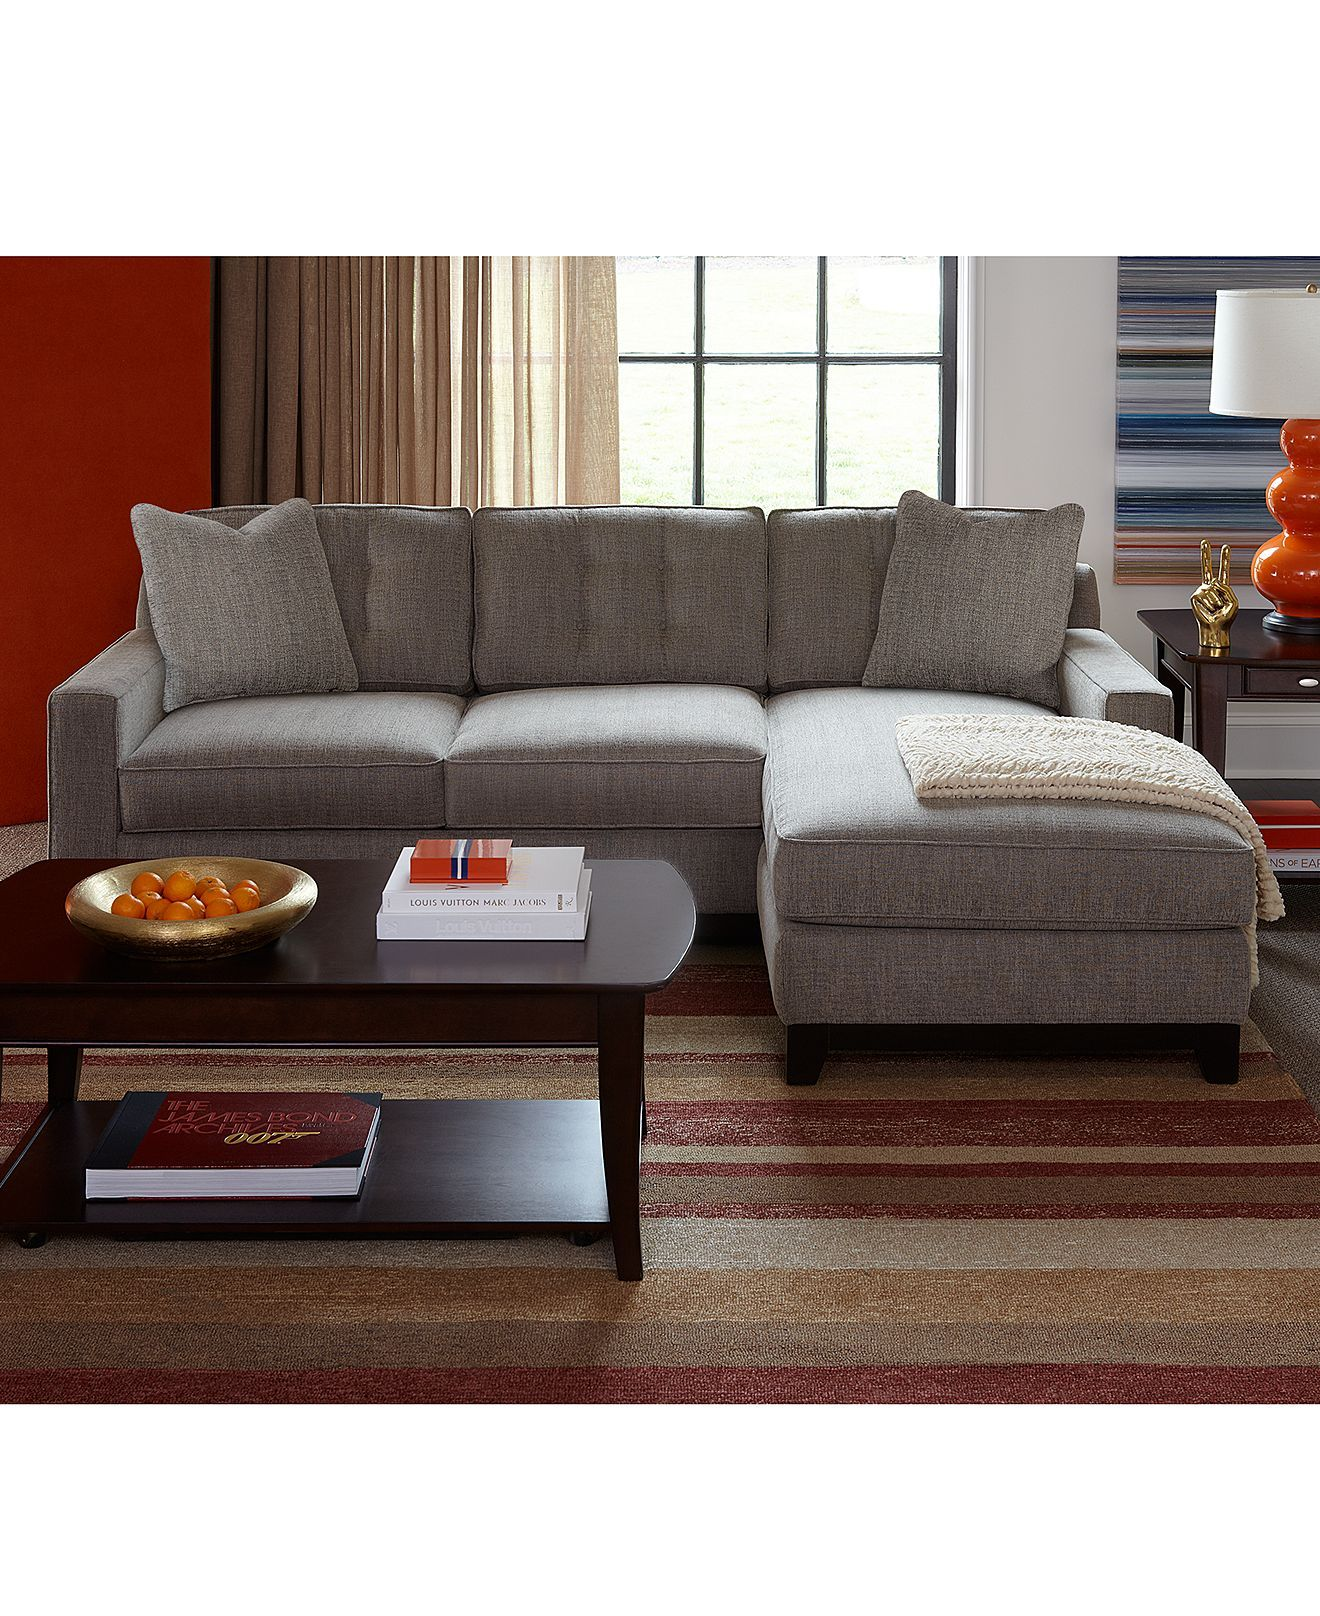 In the nightmare scenario where we must buy a new couch Macy s living room furniture sale